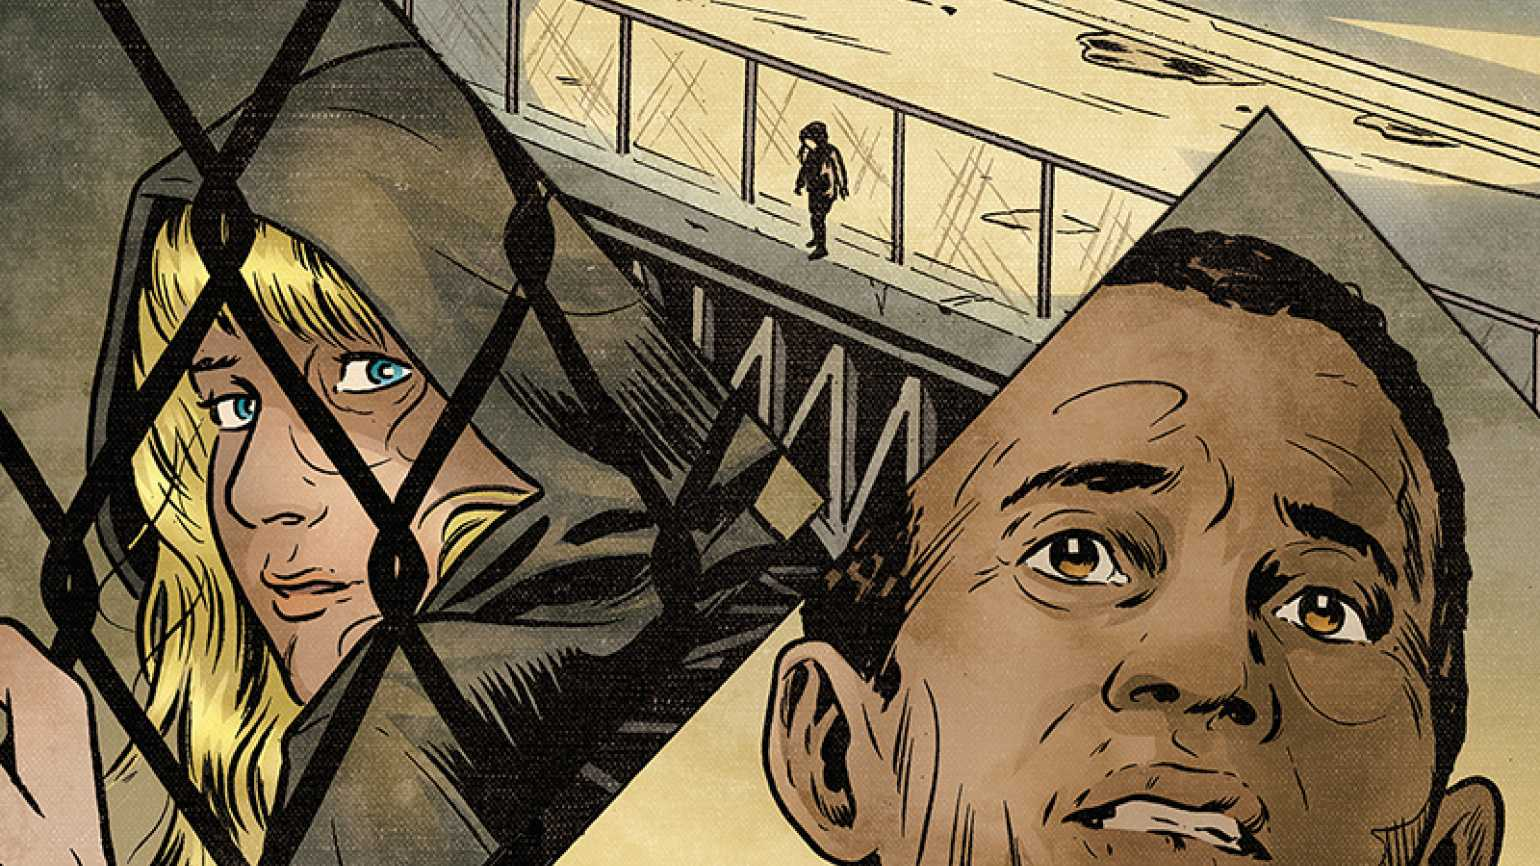 A comic-book-style illustration of Craig Pennington & the young woman he helped